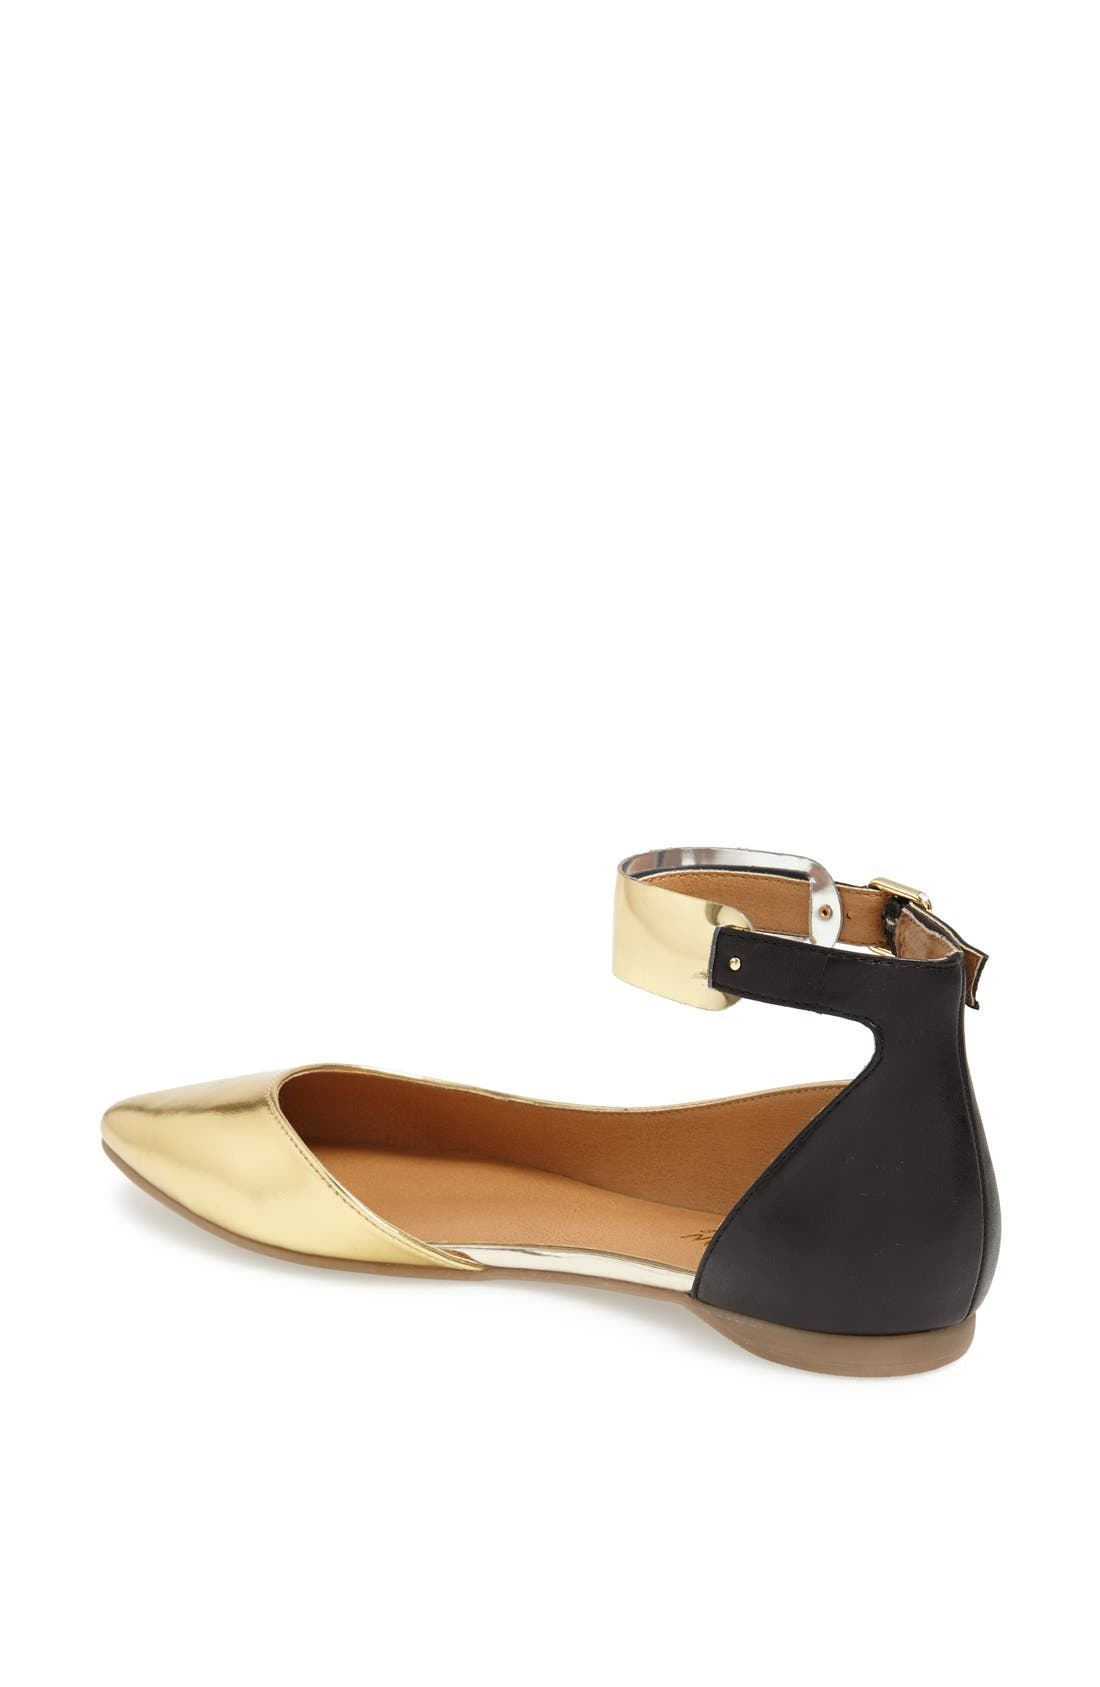 Alternate Image 2  - Kenneth Cole Reaction 'Pose Off 2' Cuff Ankle Strap Half d'Orsay Sandal